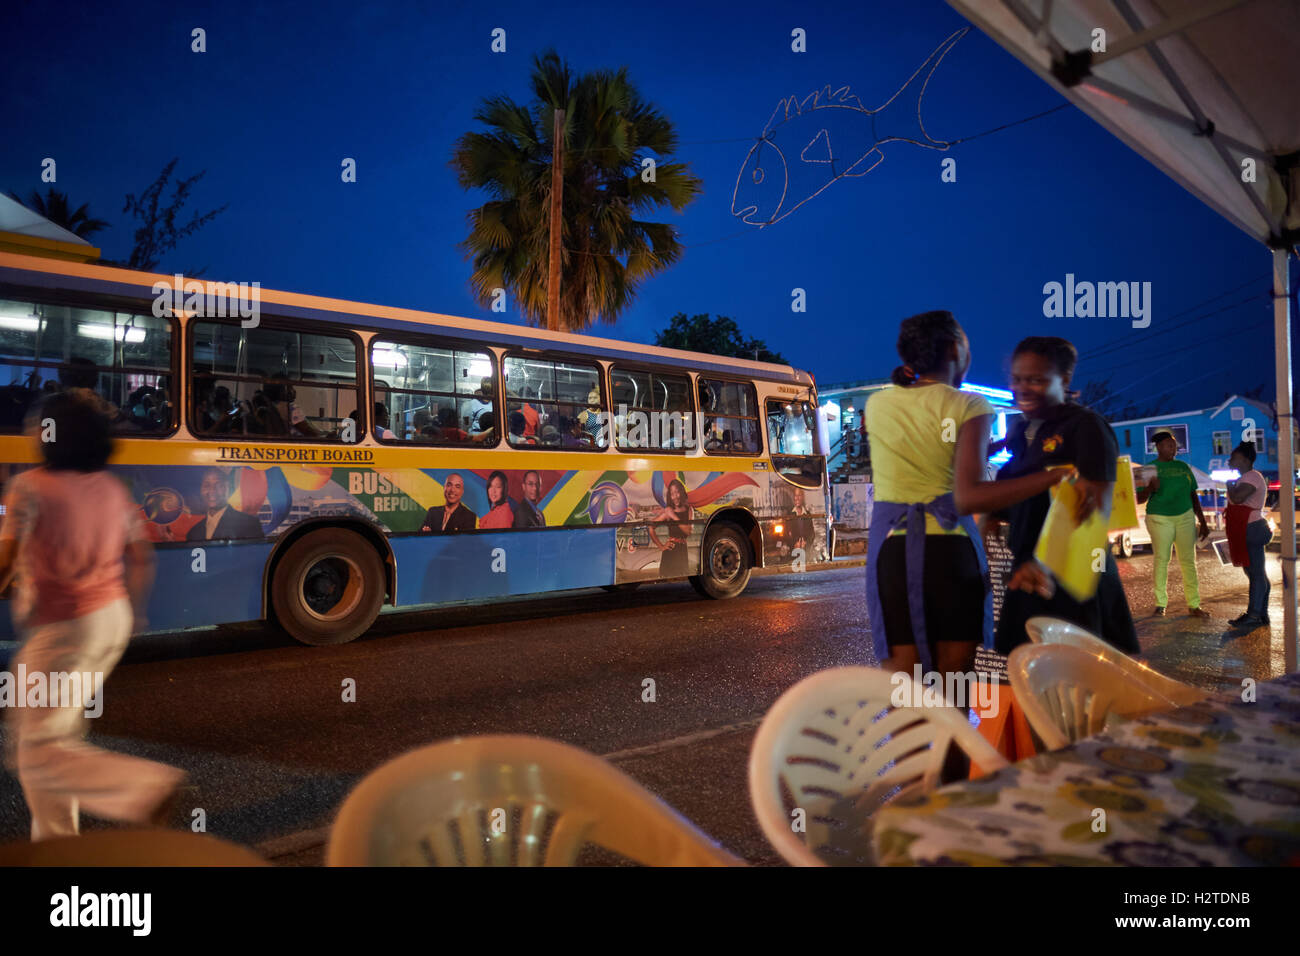 Barbados transport board bus  coastal town parish Christ Church government service blue yellow busy street Transport - Stock Image